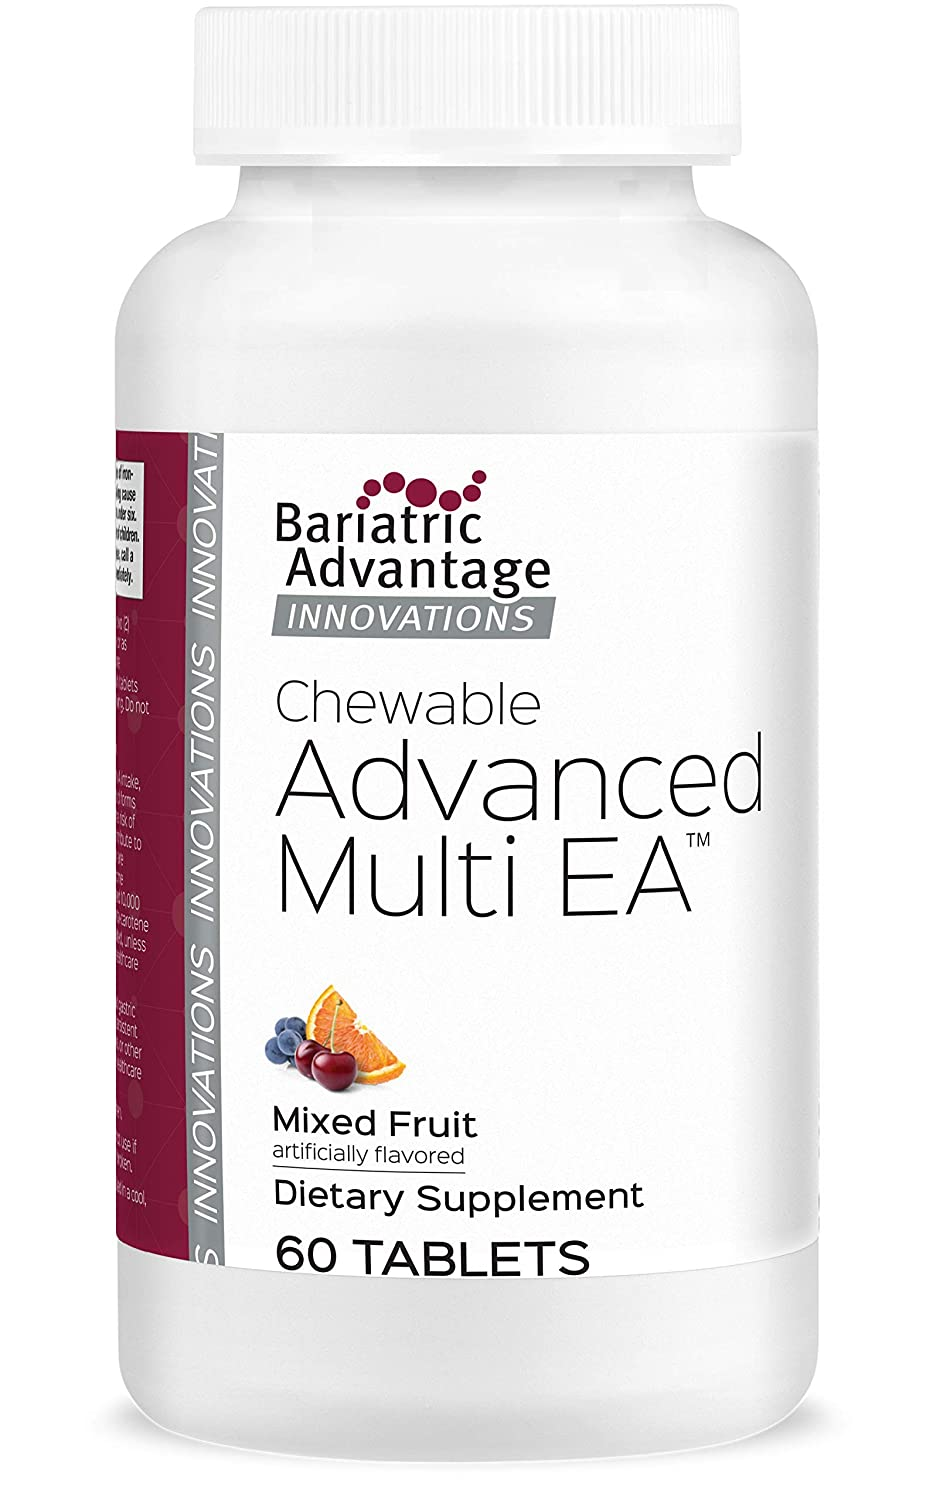 Bariatric Advantage Advanced Multi EA Chewable Multivitamin 60 ct